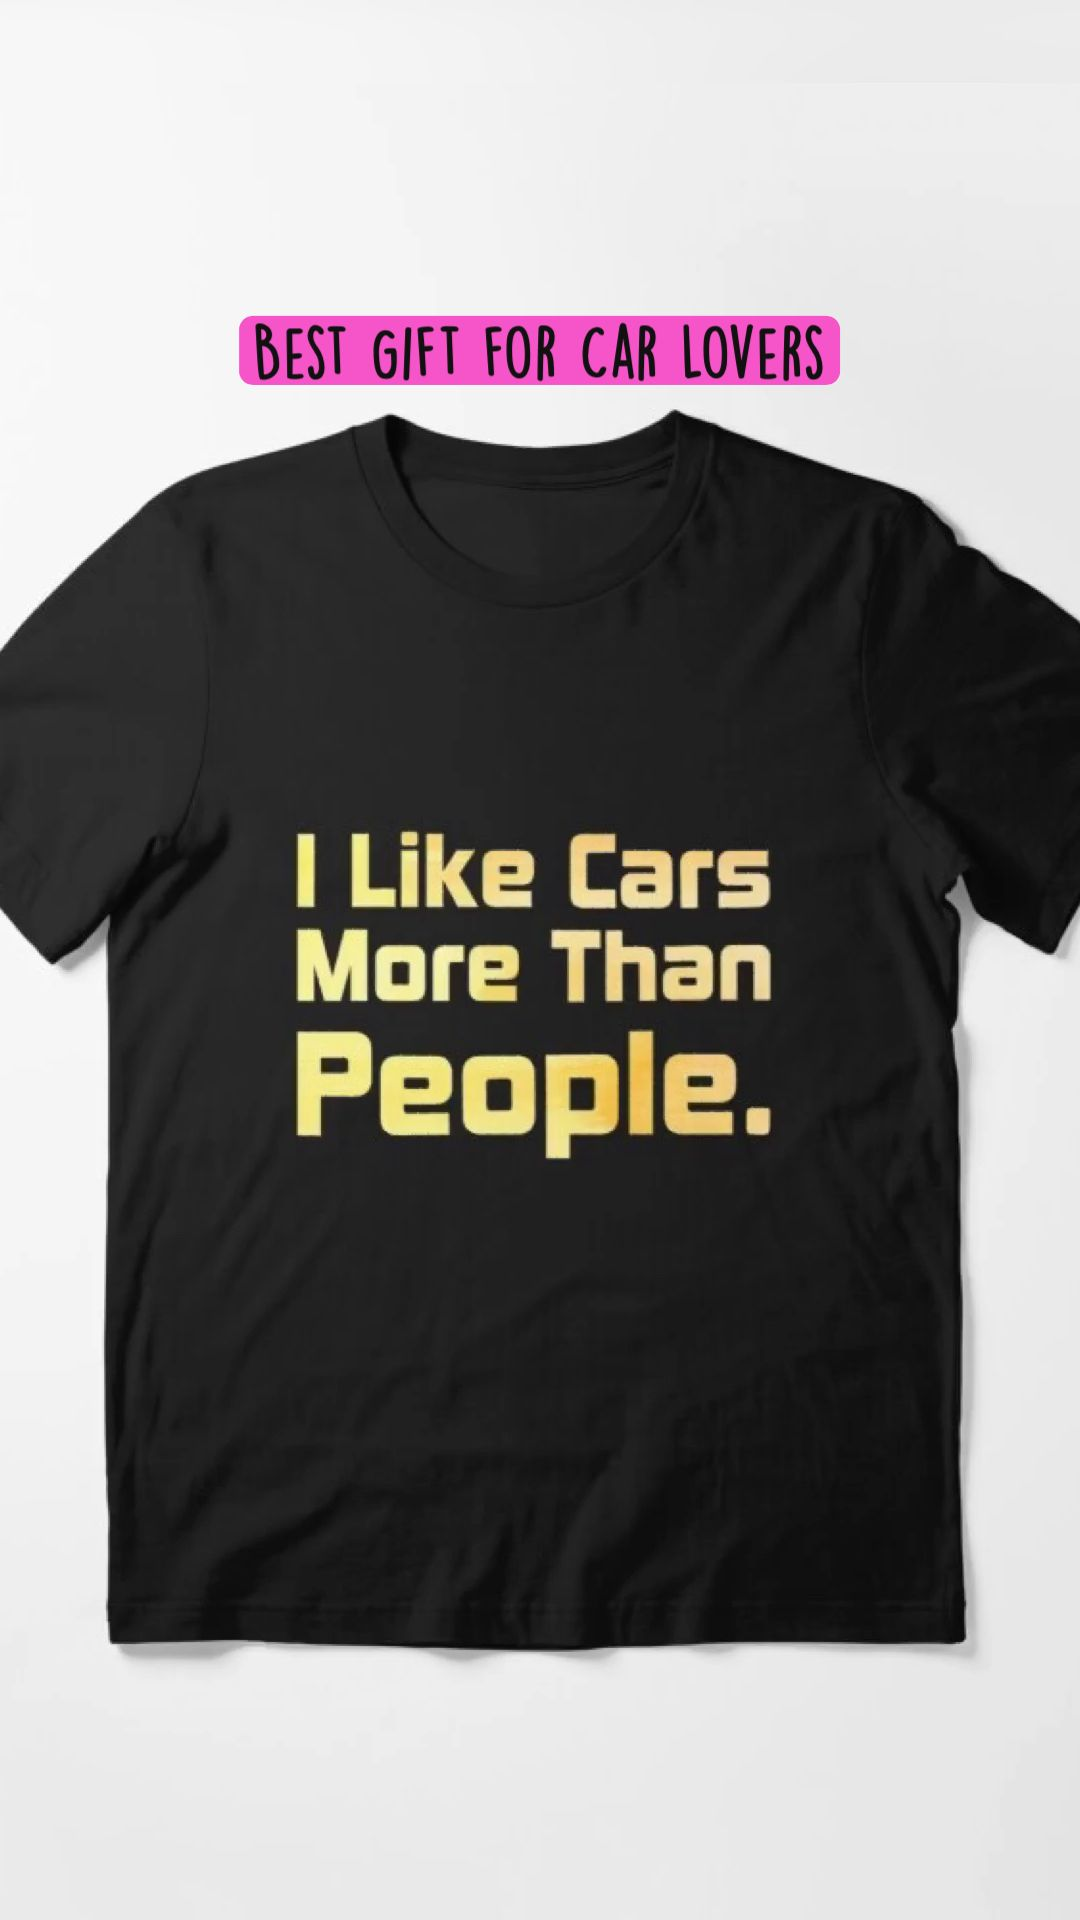 Funny T shirt, I Like Cars More Than People., best gift